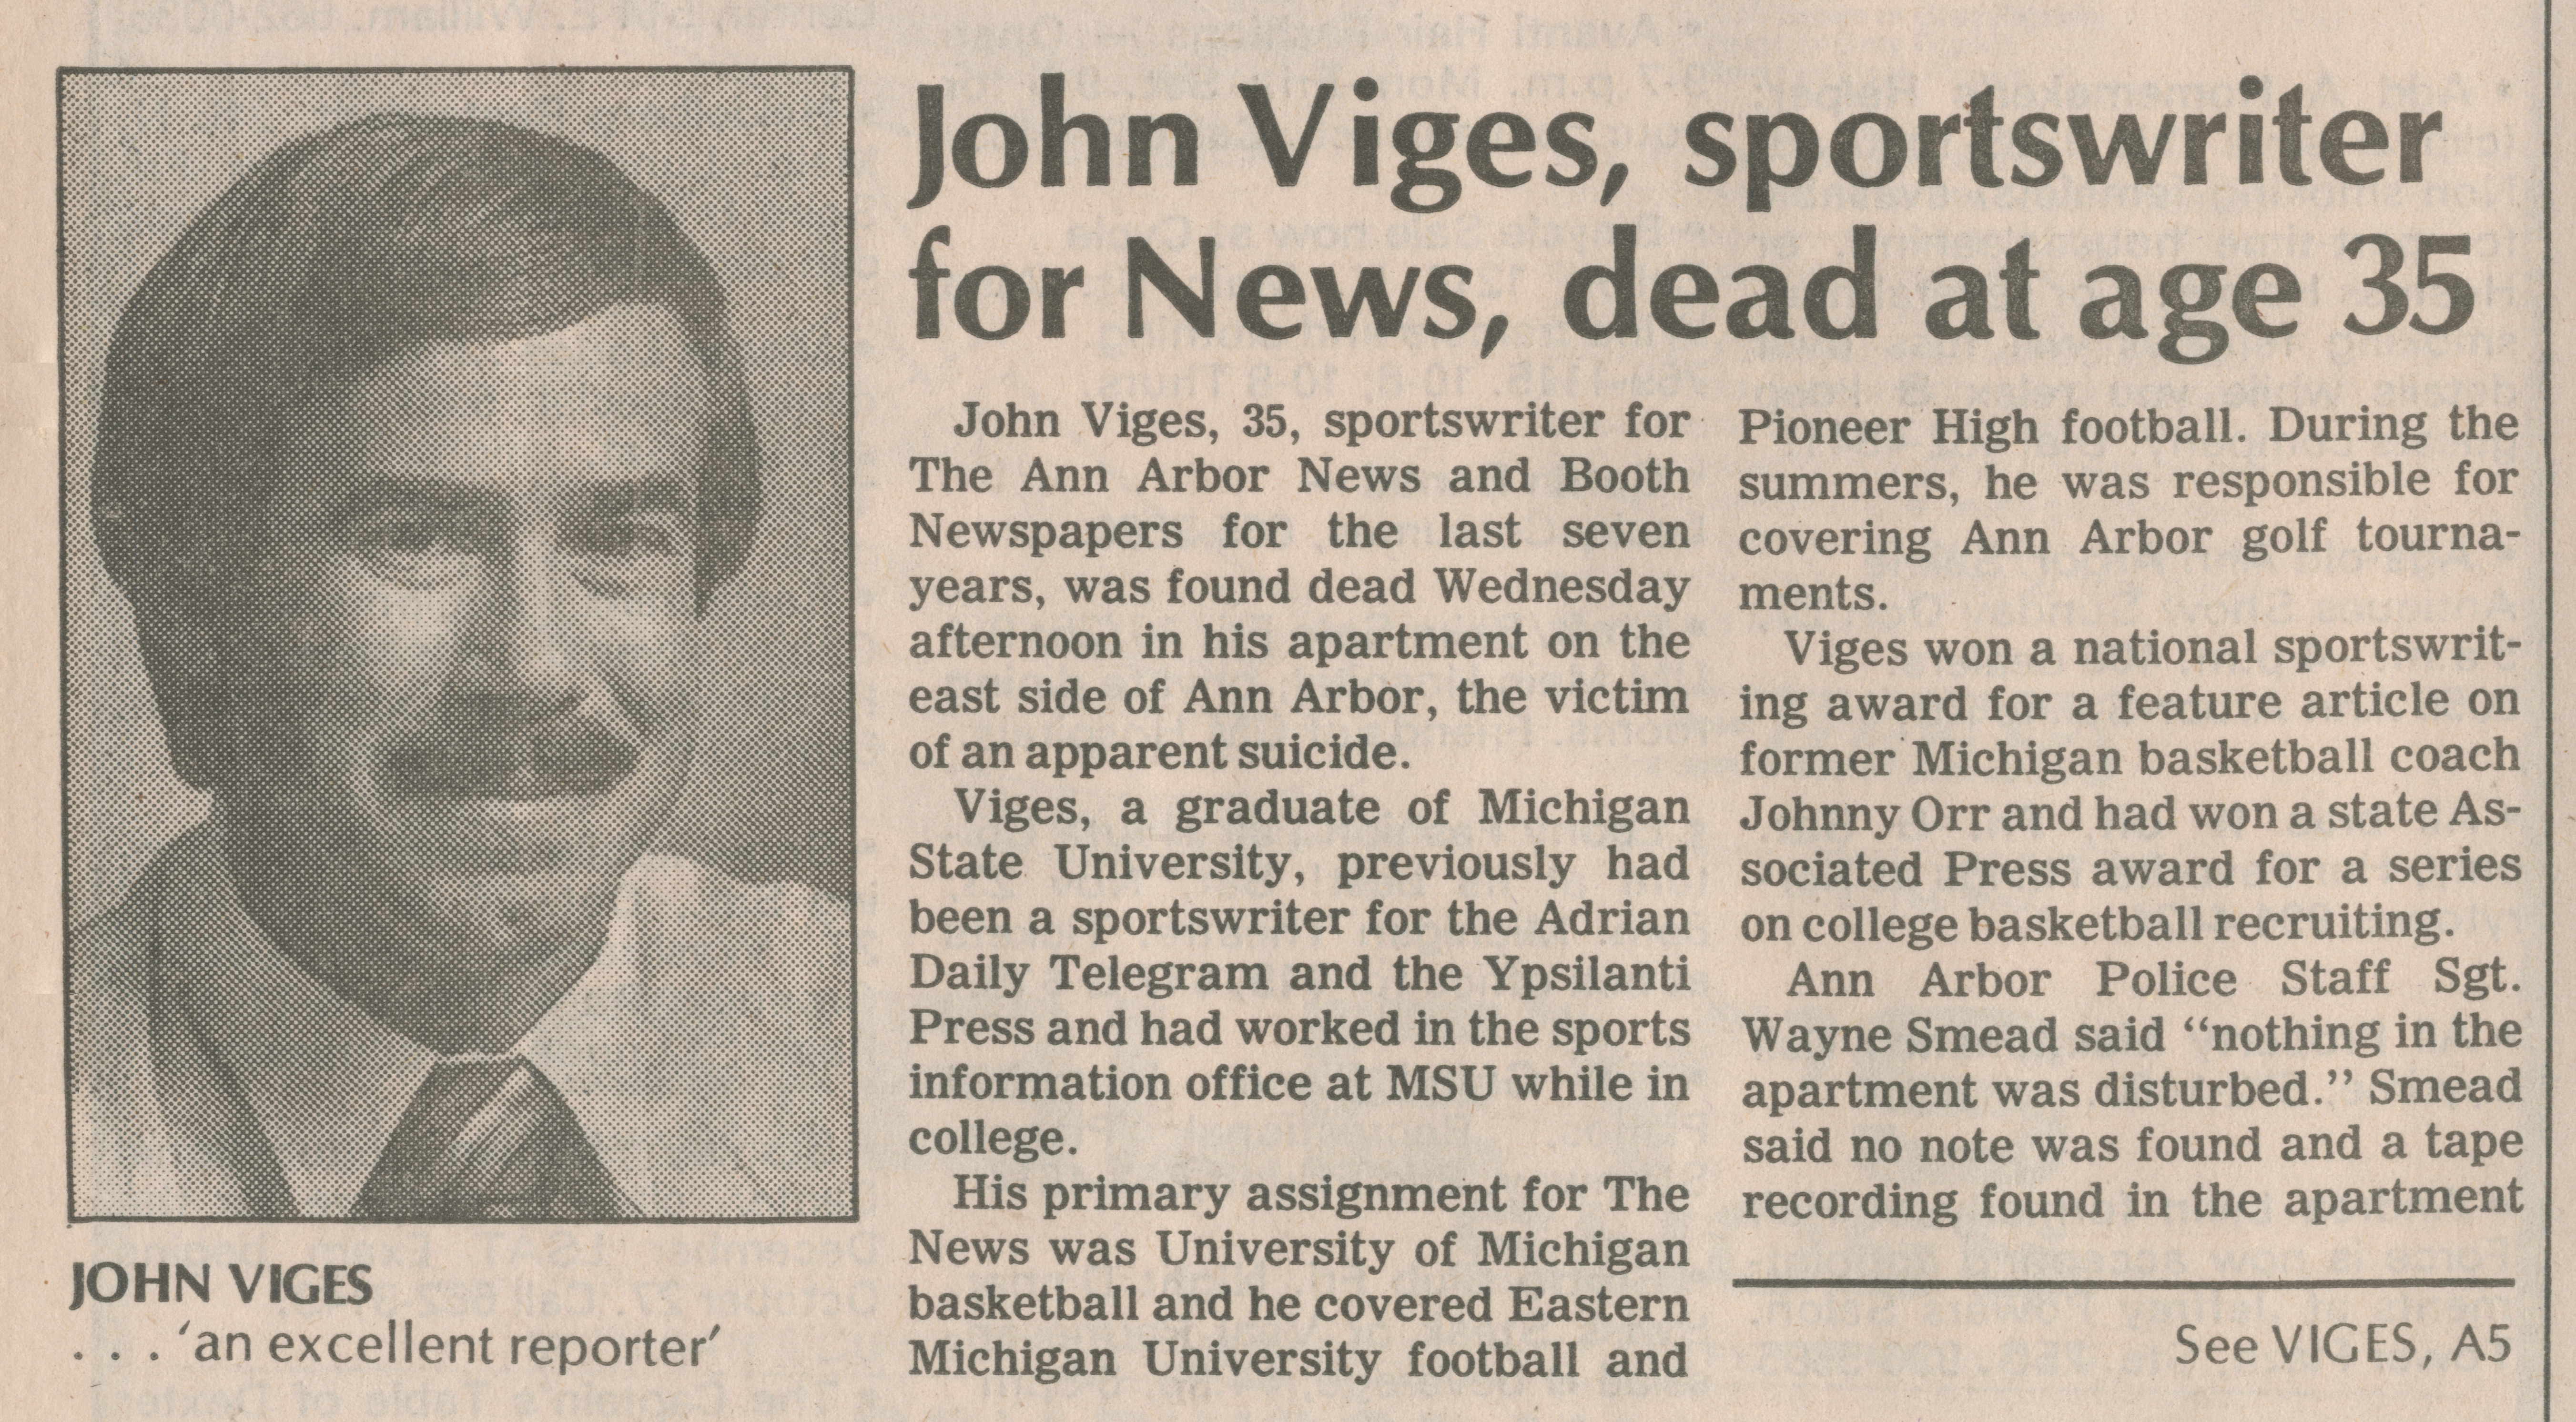 John Viges, sportswriter for News, dead at age 35 image